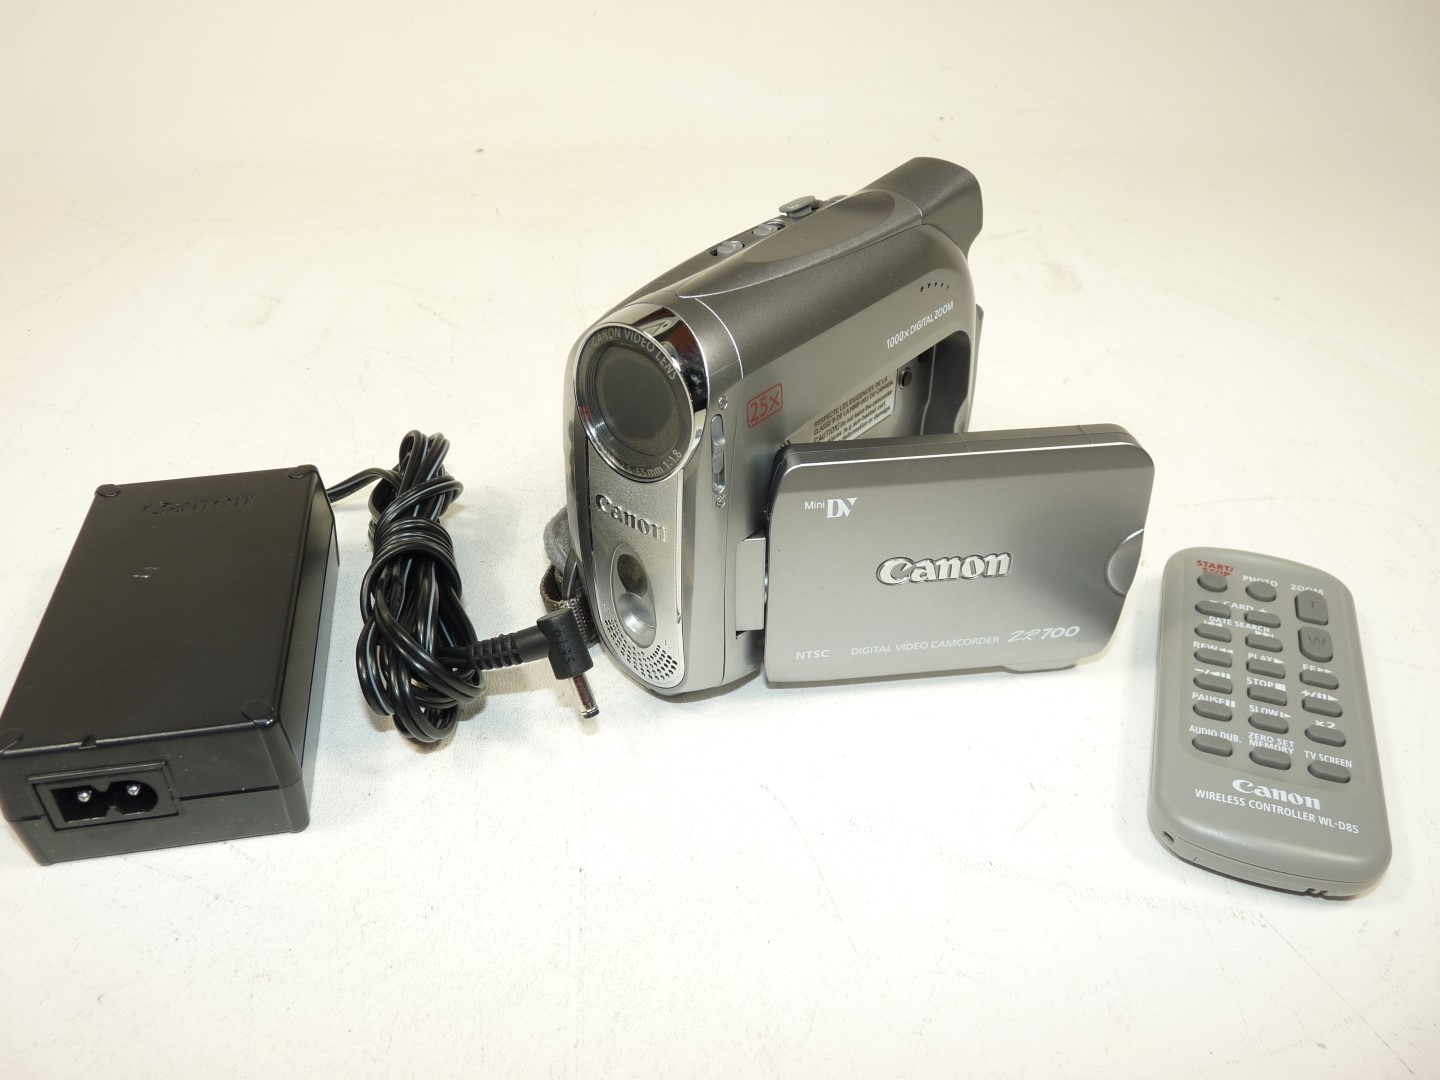 canon zr700 ntsc minidv digital video camcorder w psu remote power rh ebay com Canon EOS 400D Canon EOS 400D